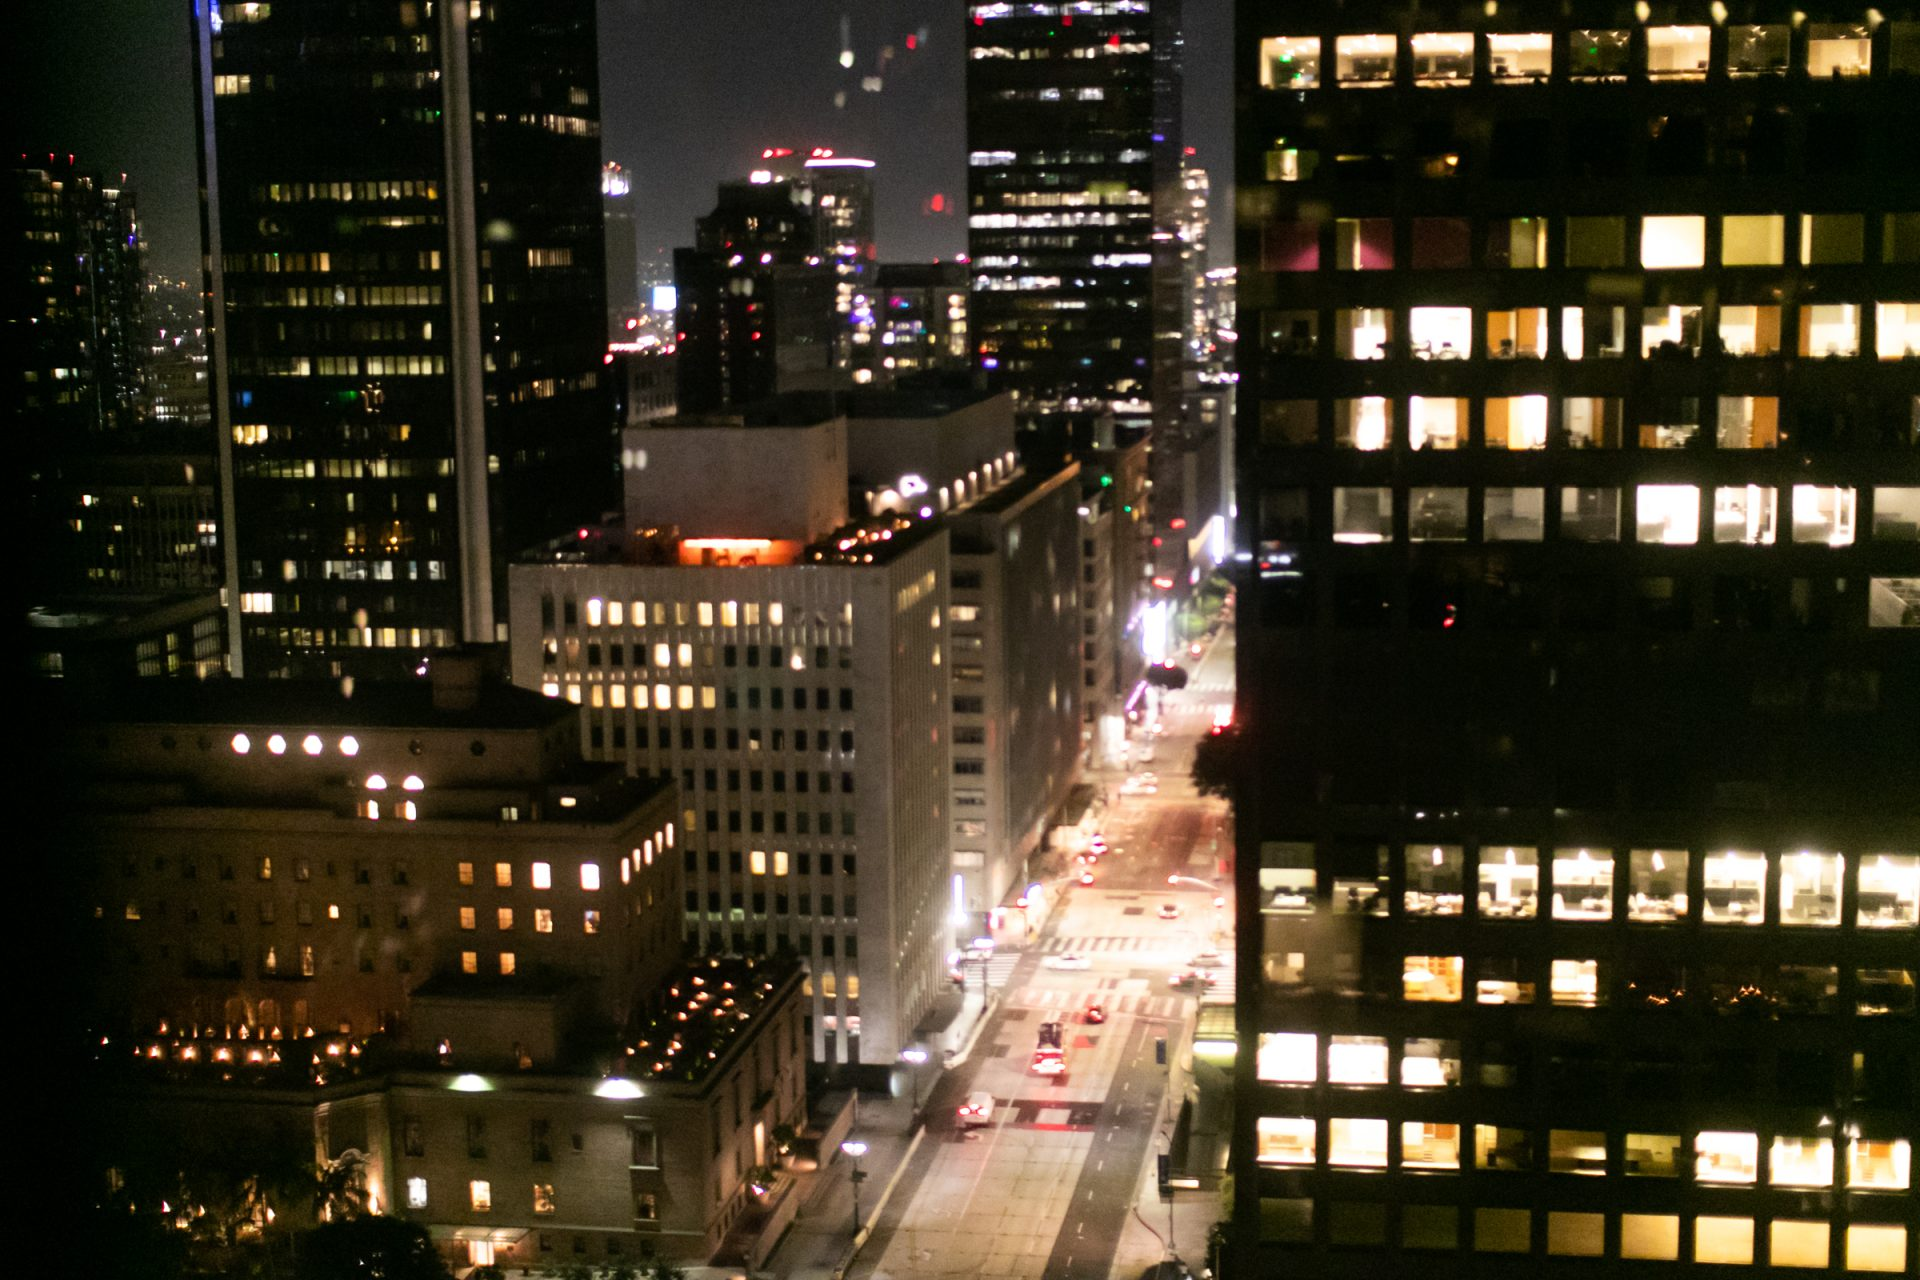 Brightly Illuminated Street Between Tall Buildings At Night